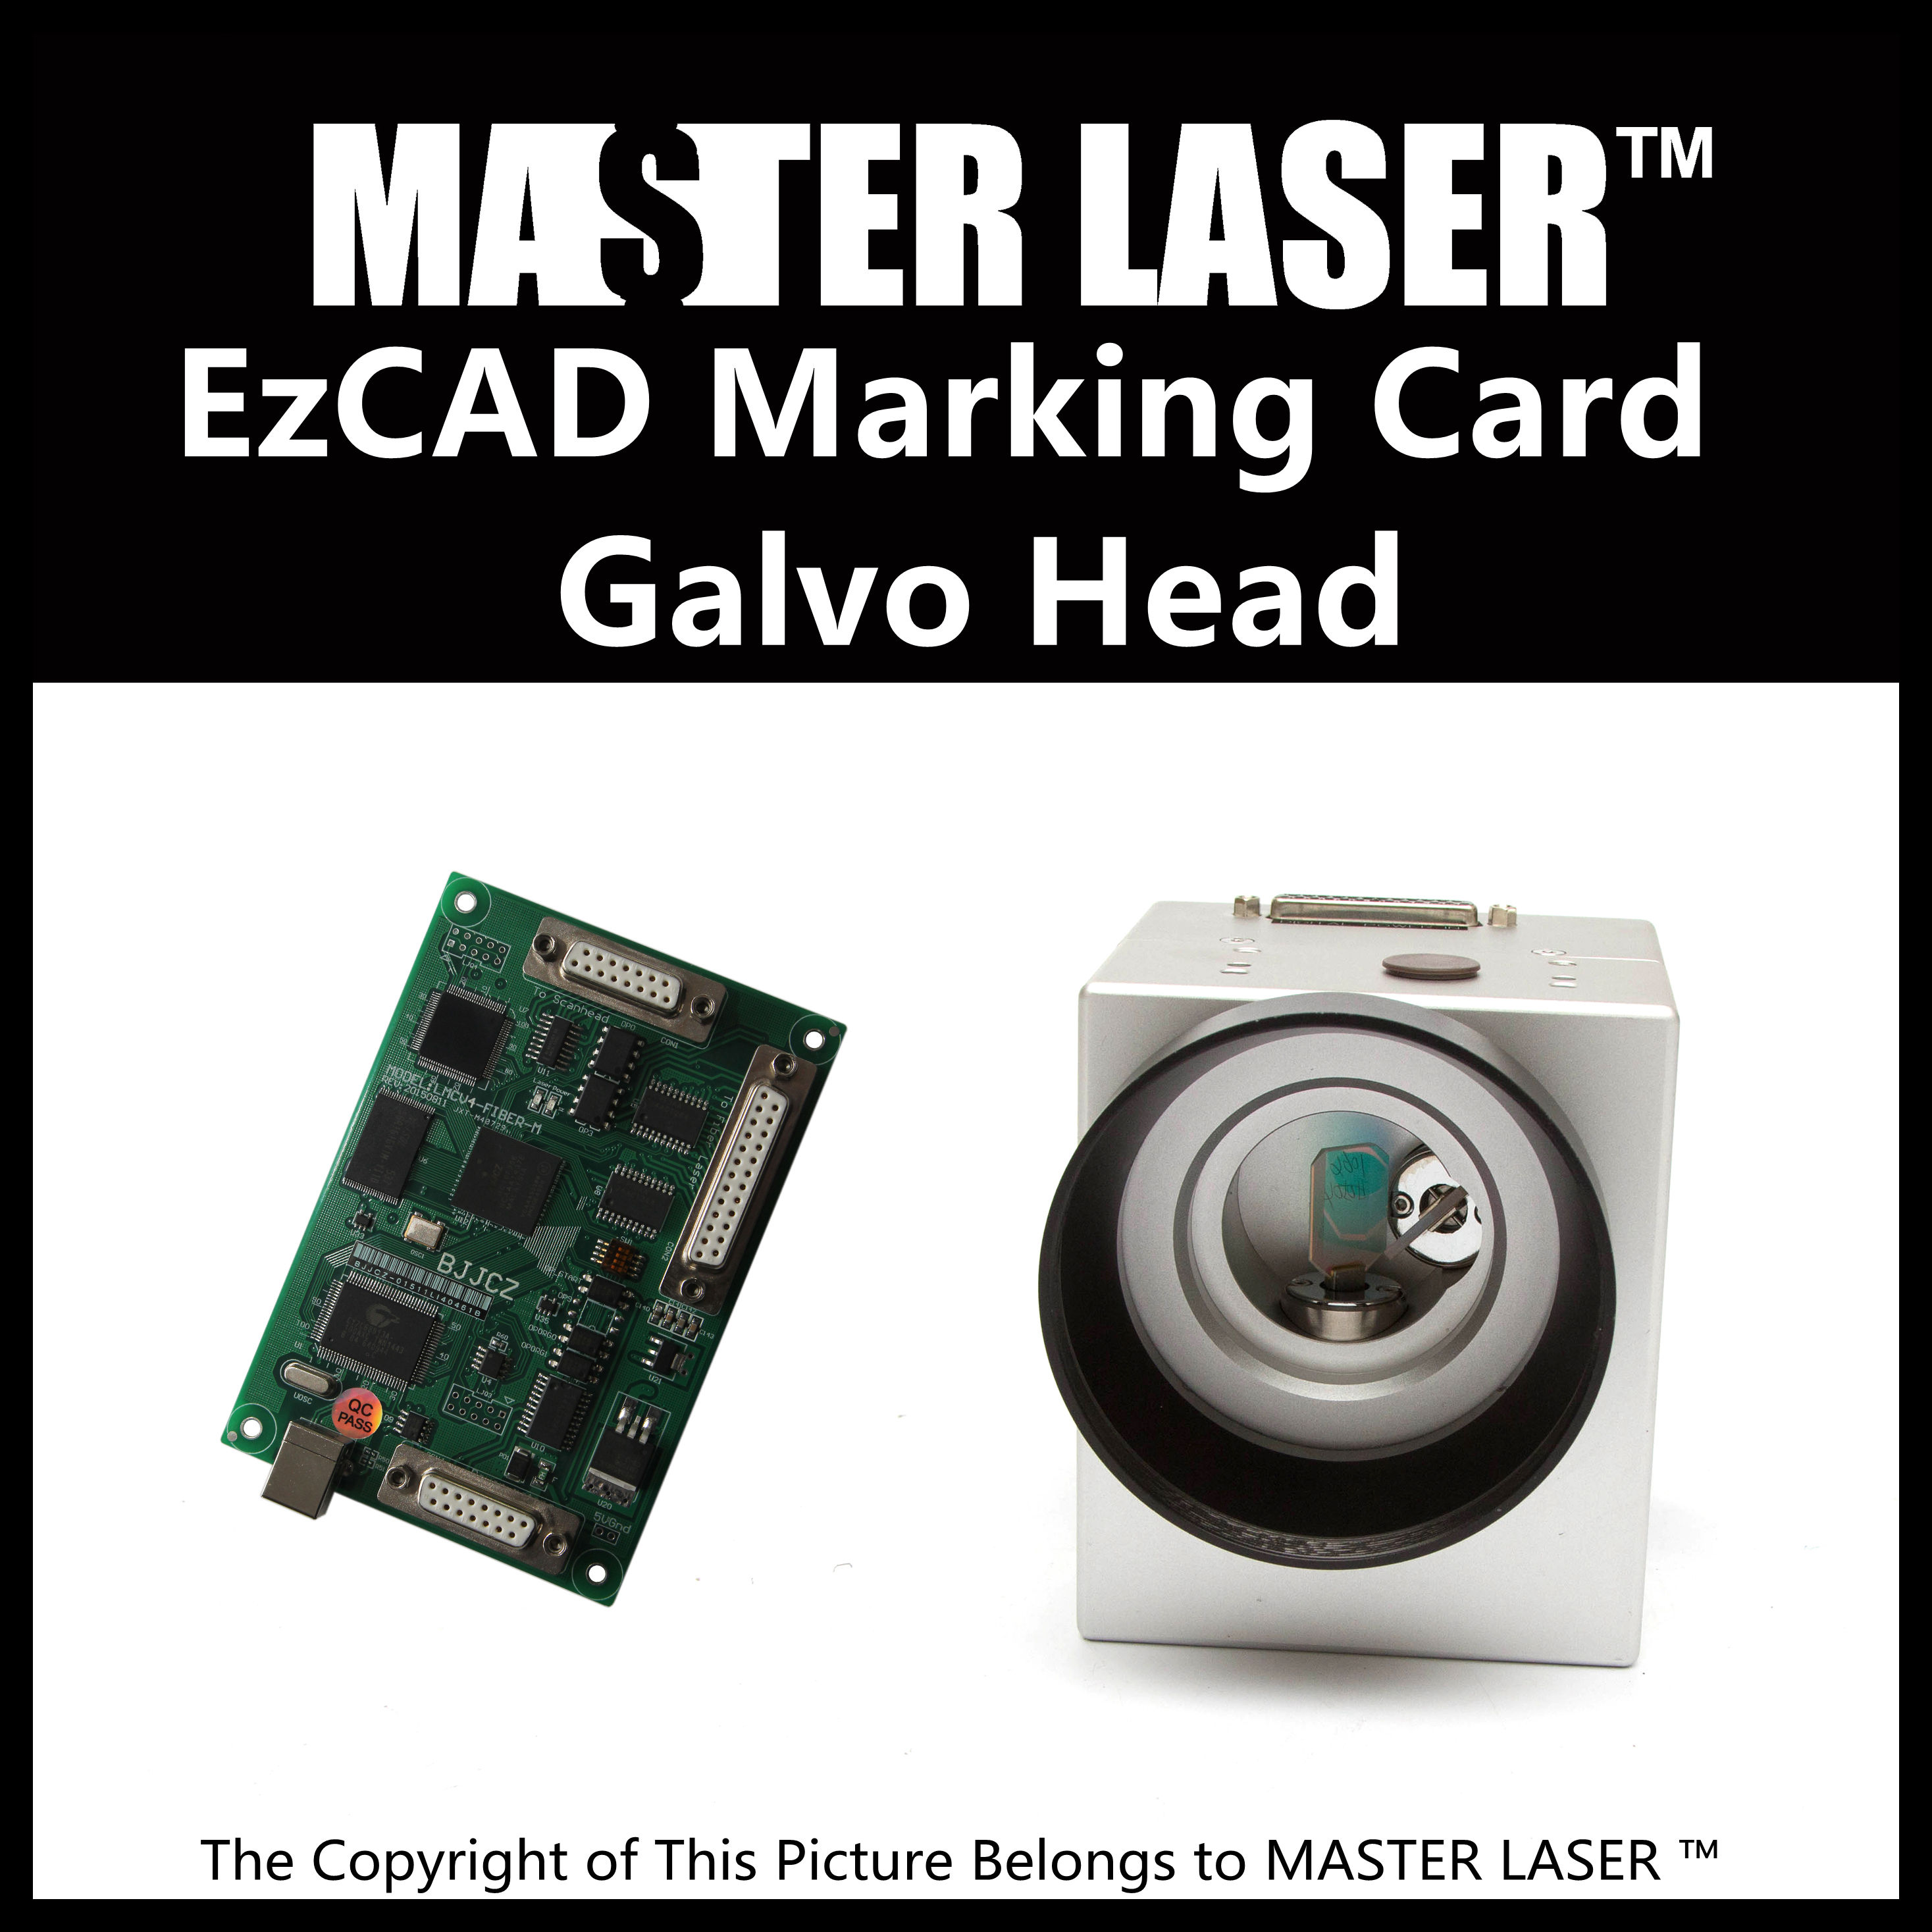 Low Price Good Quality Galvo Scanning System 1064nm 10mm Input Fiber Laser Galvanometer and Original BJJCZ EzCAD Marking Card good quality 10mm aperture 1064nm yag fiber engraving machine laser galvanometer scanner